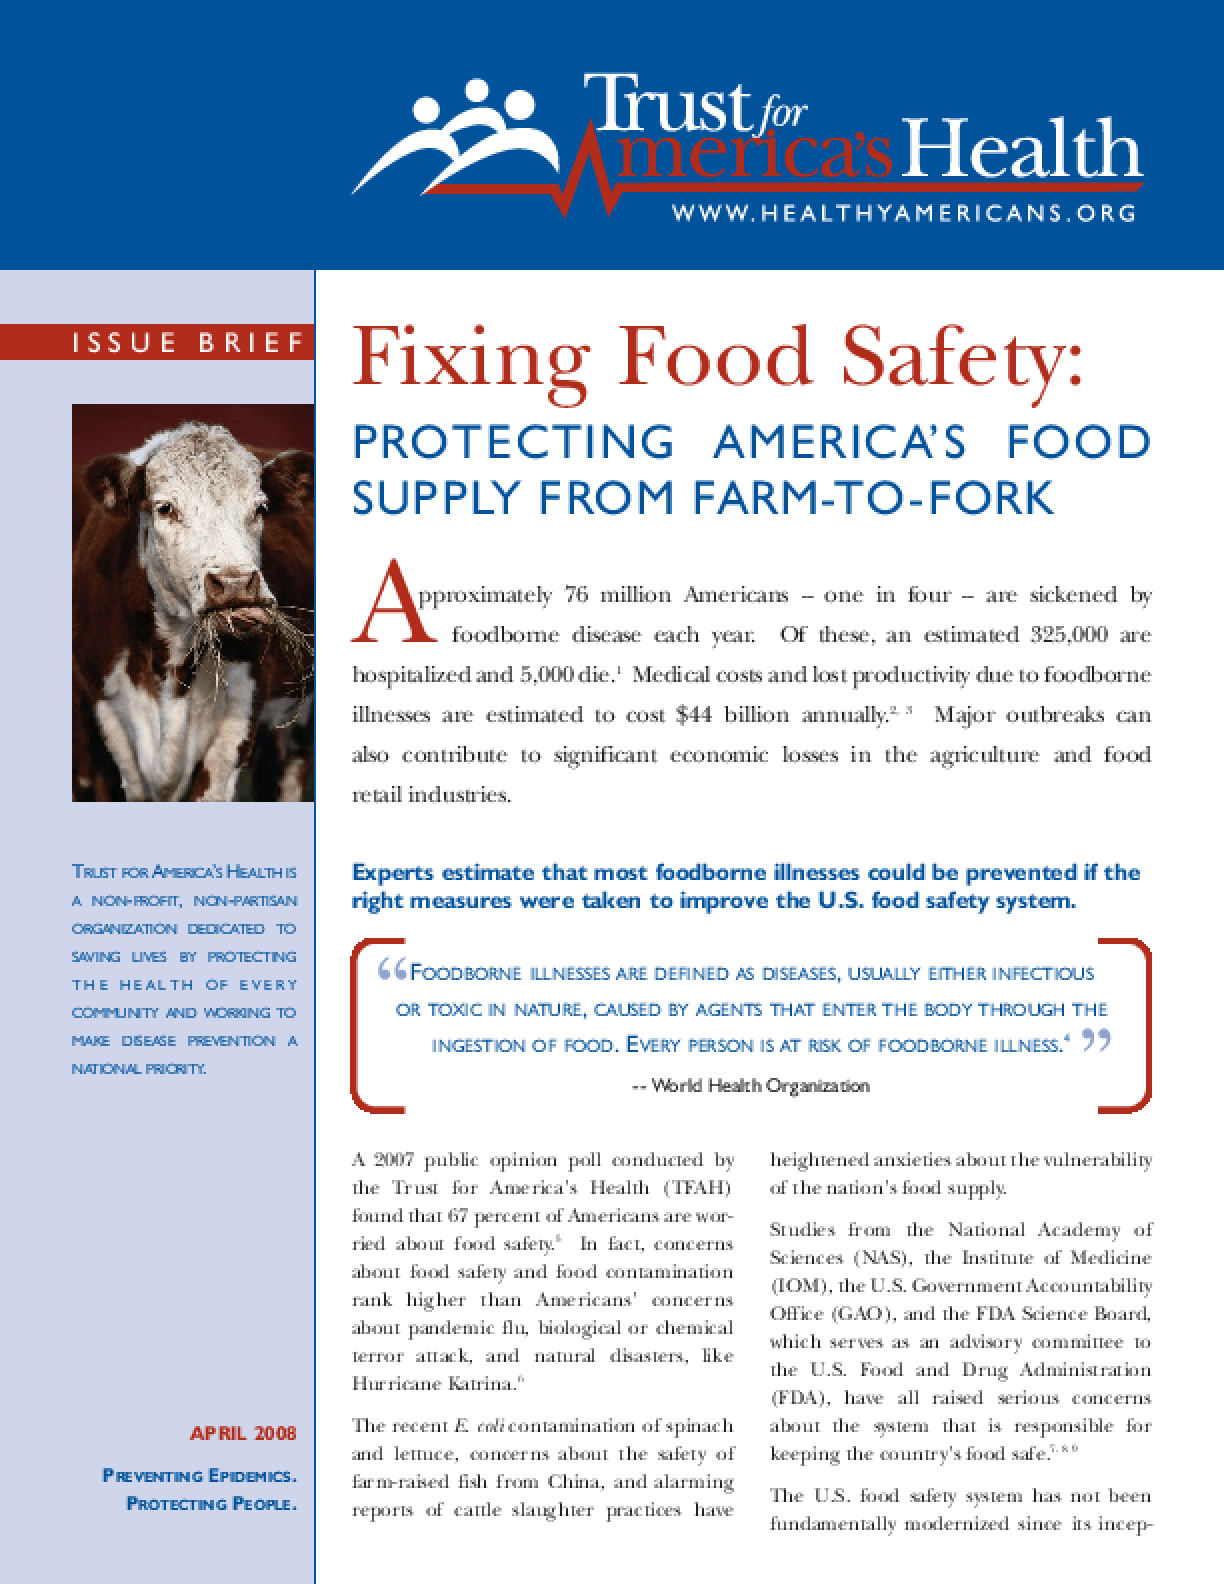 Fixing Food Safety: Protecting America's Food Supply From Farm-to-Fork